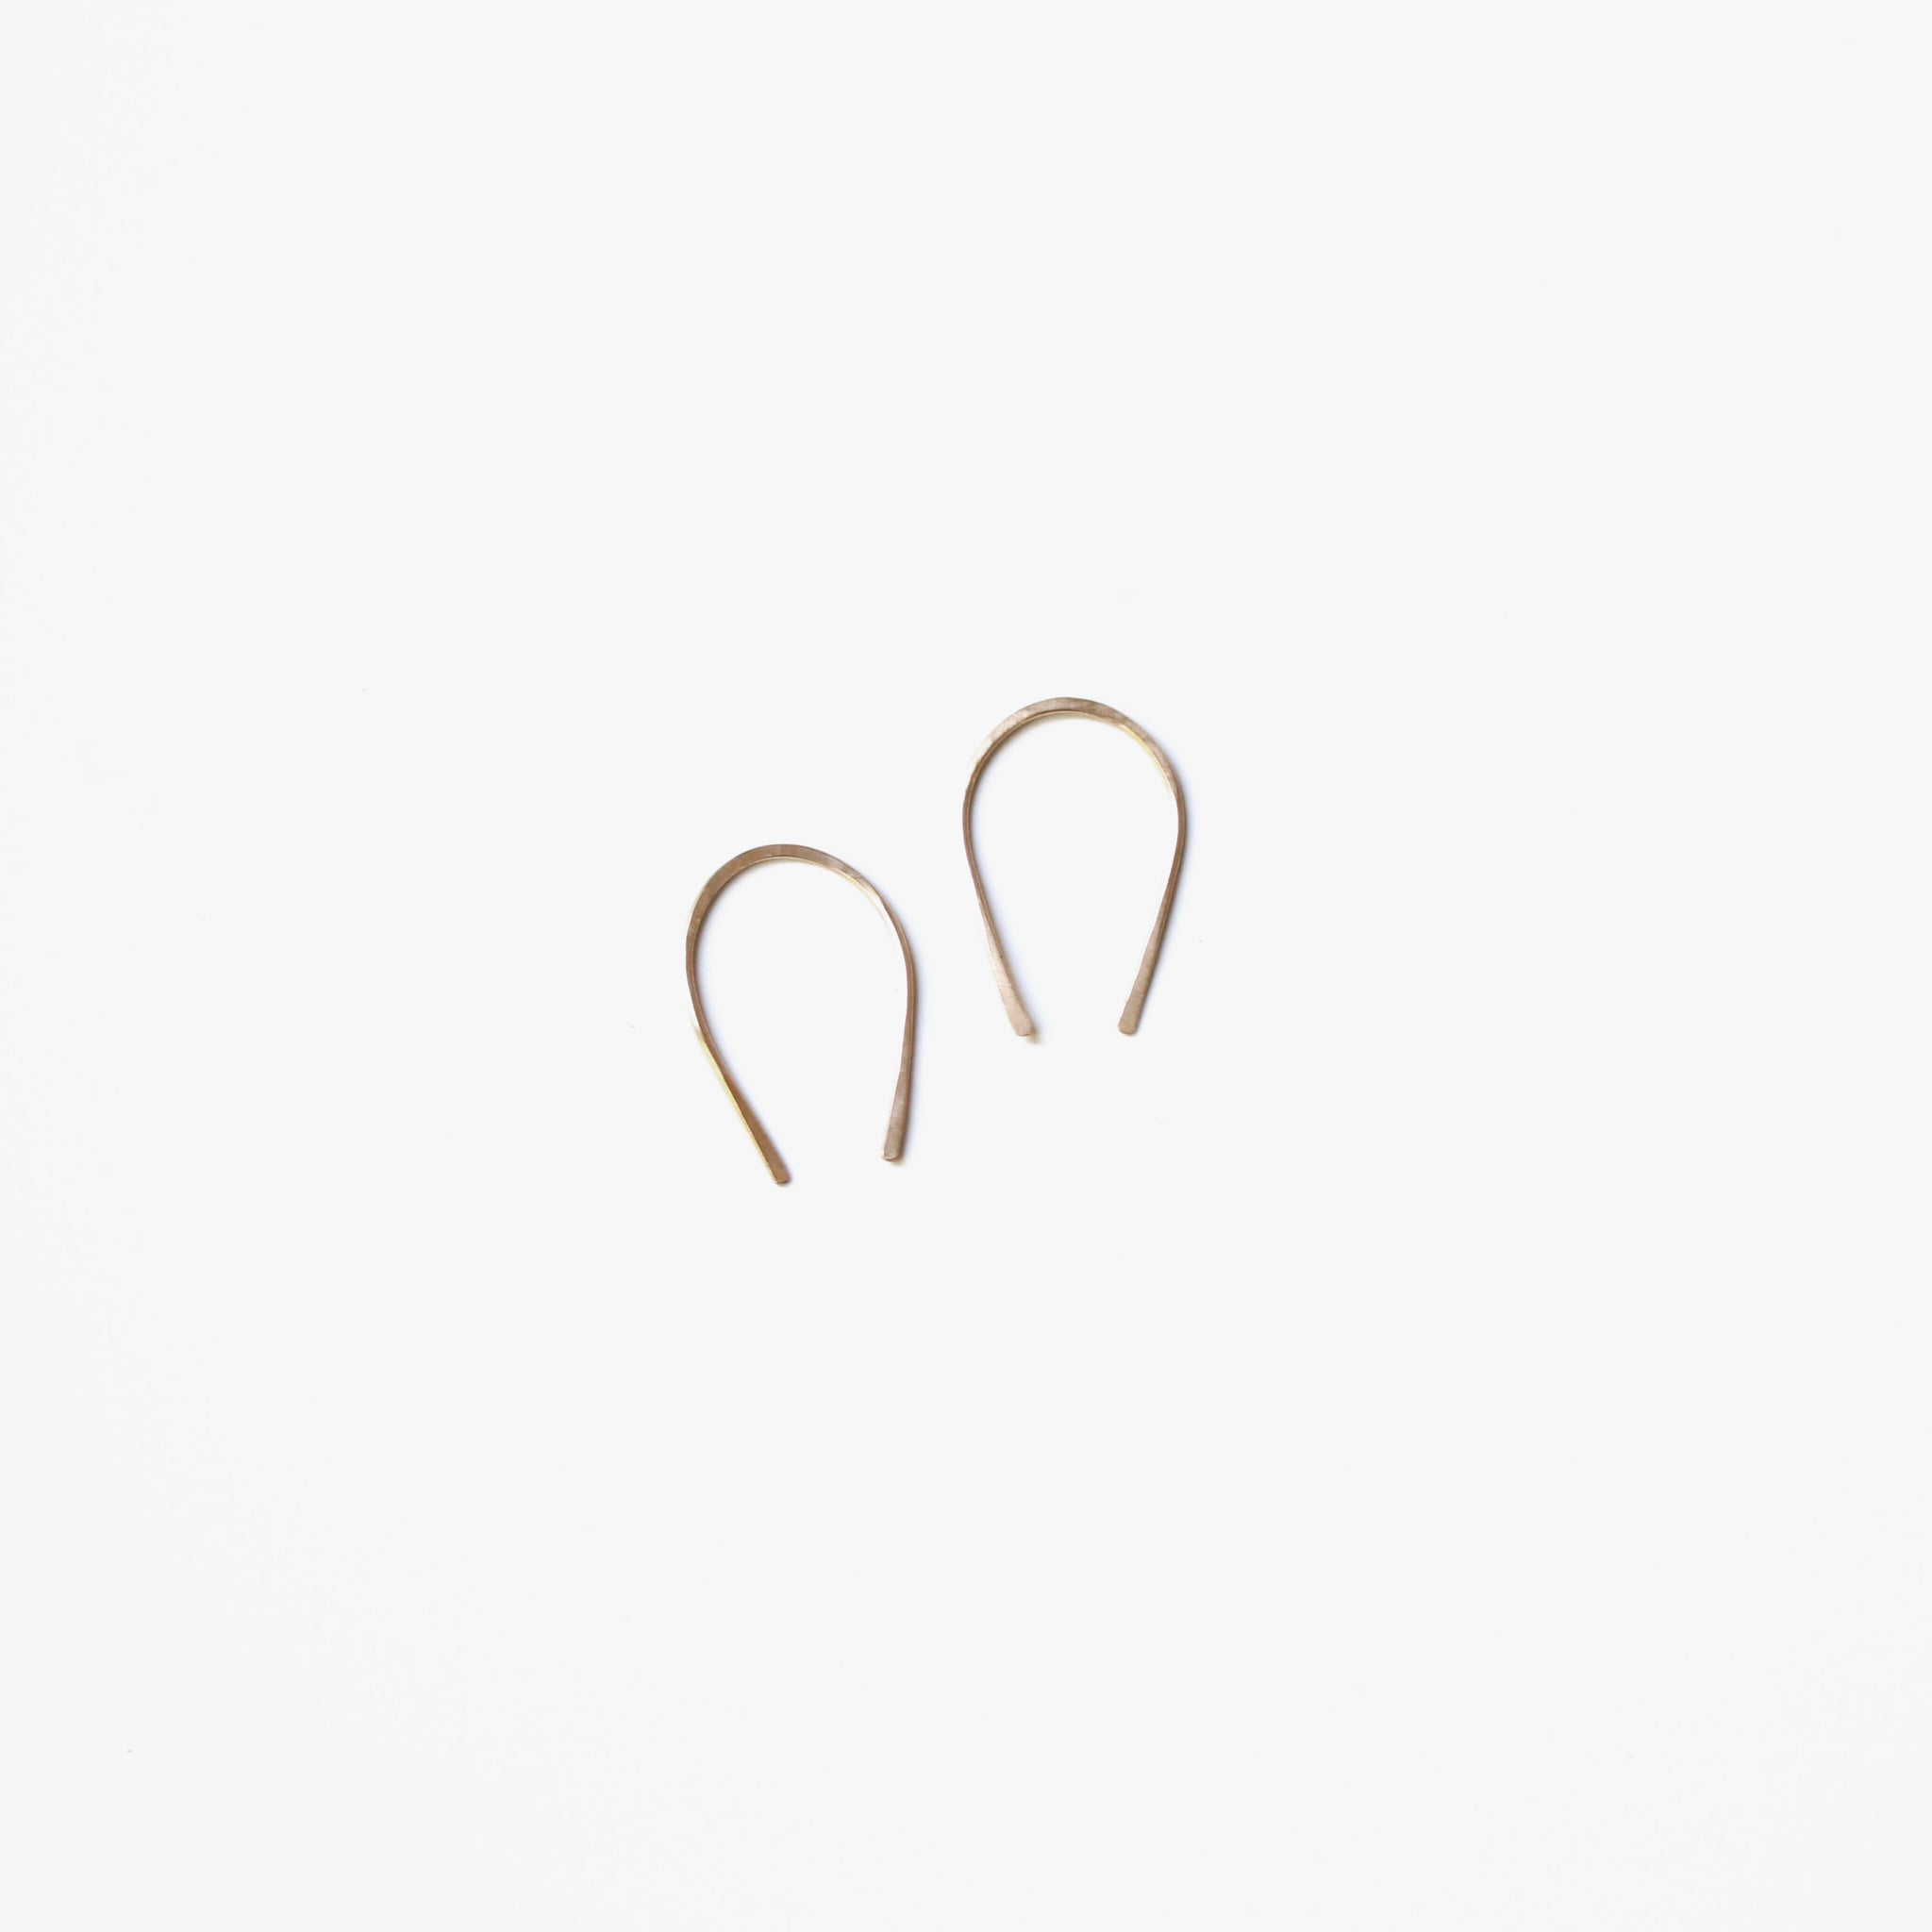 Nomad Hoop Earrings- Gold Filled